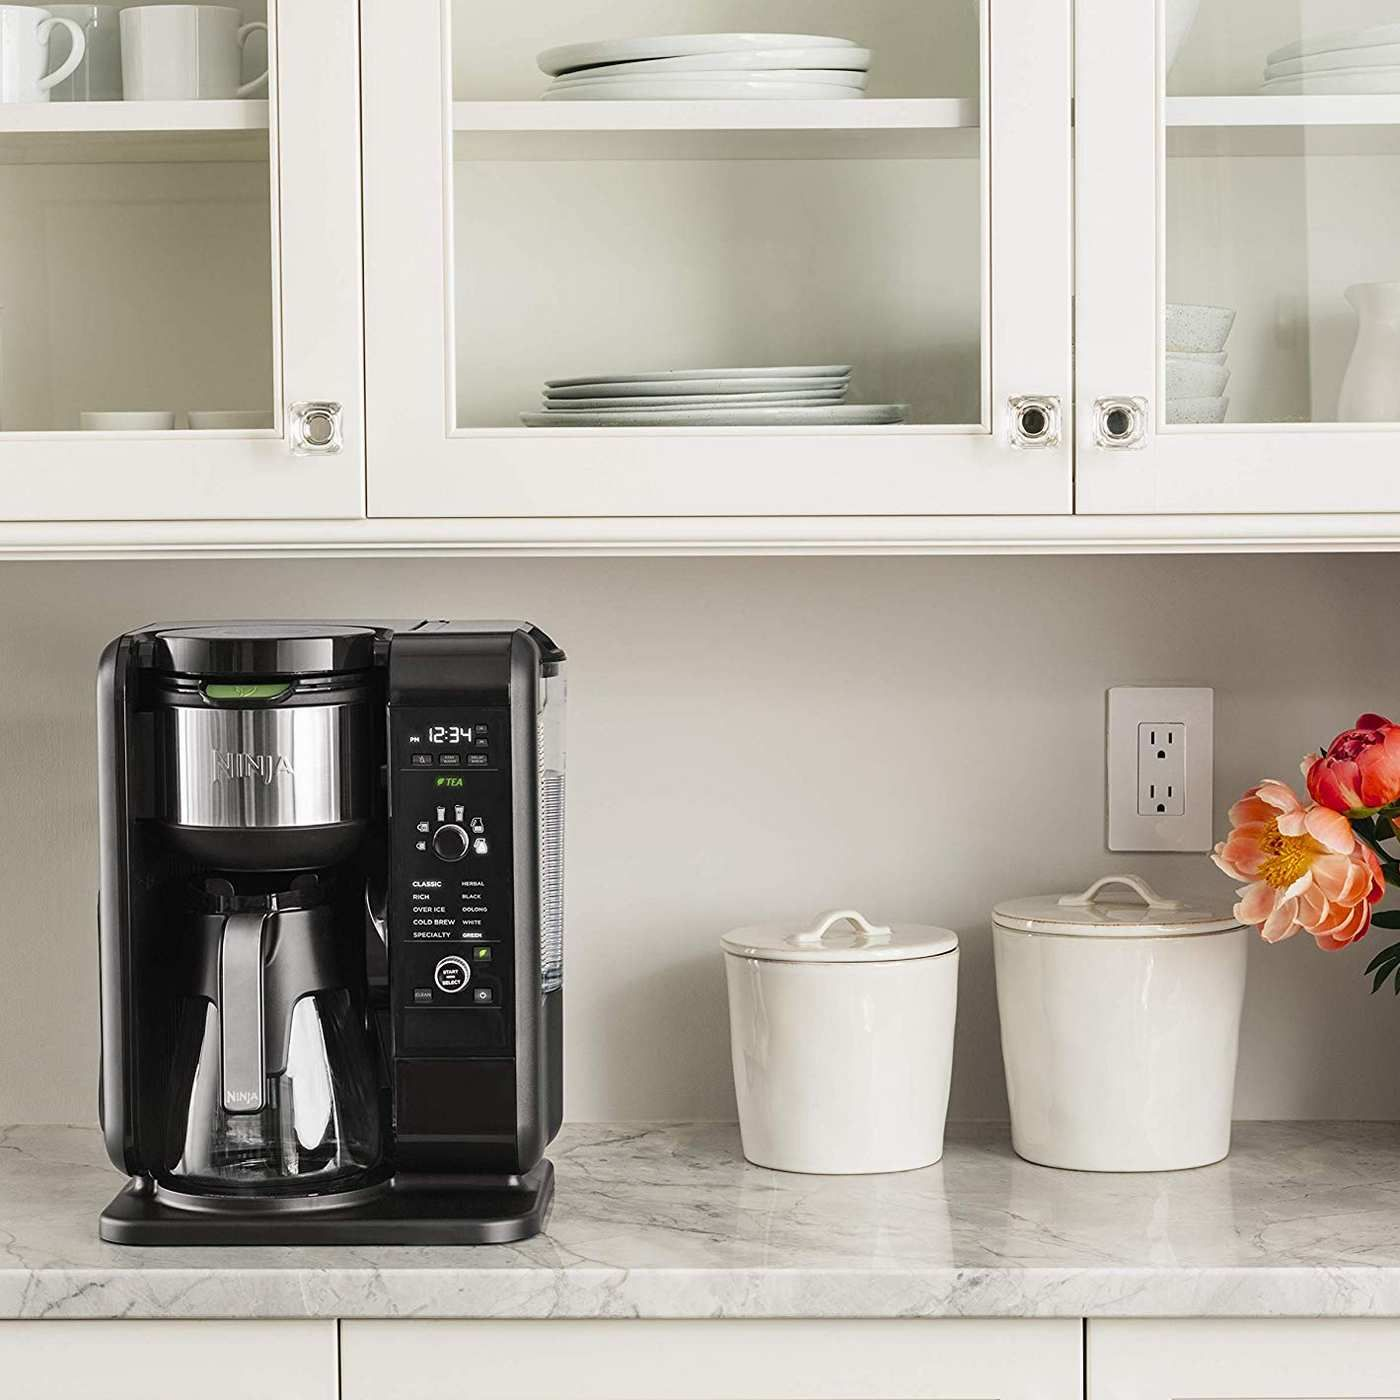 The Best Drip Coffee Makers on Amazon, According to